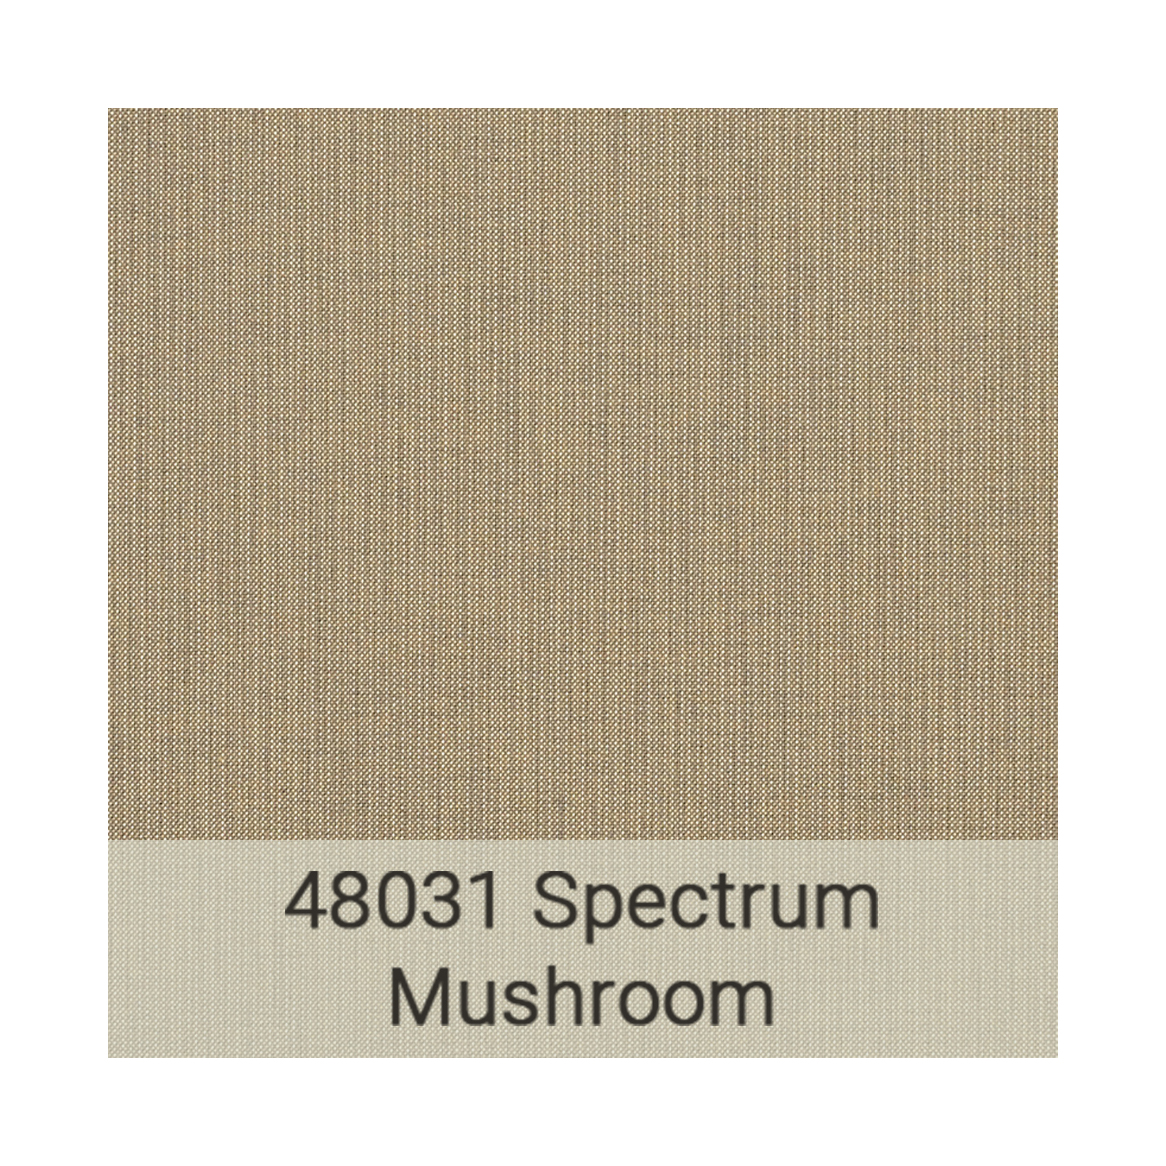 Kingston Casual Sunbrella gradeb-48031-spectrum-mushroom